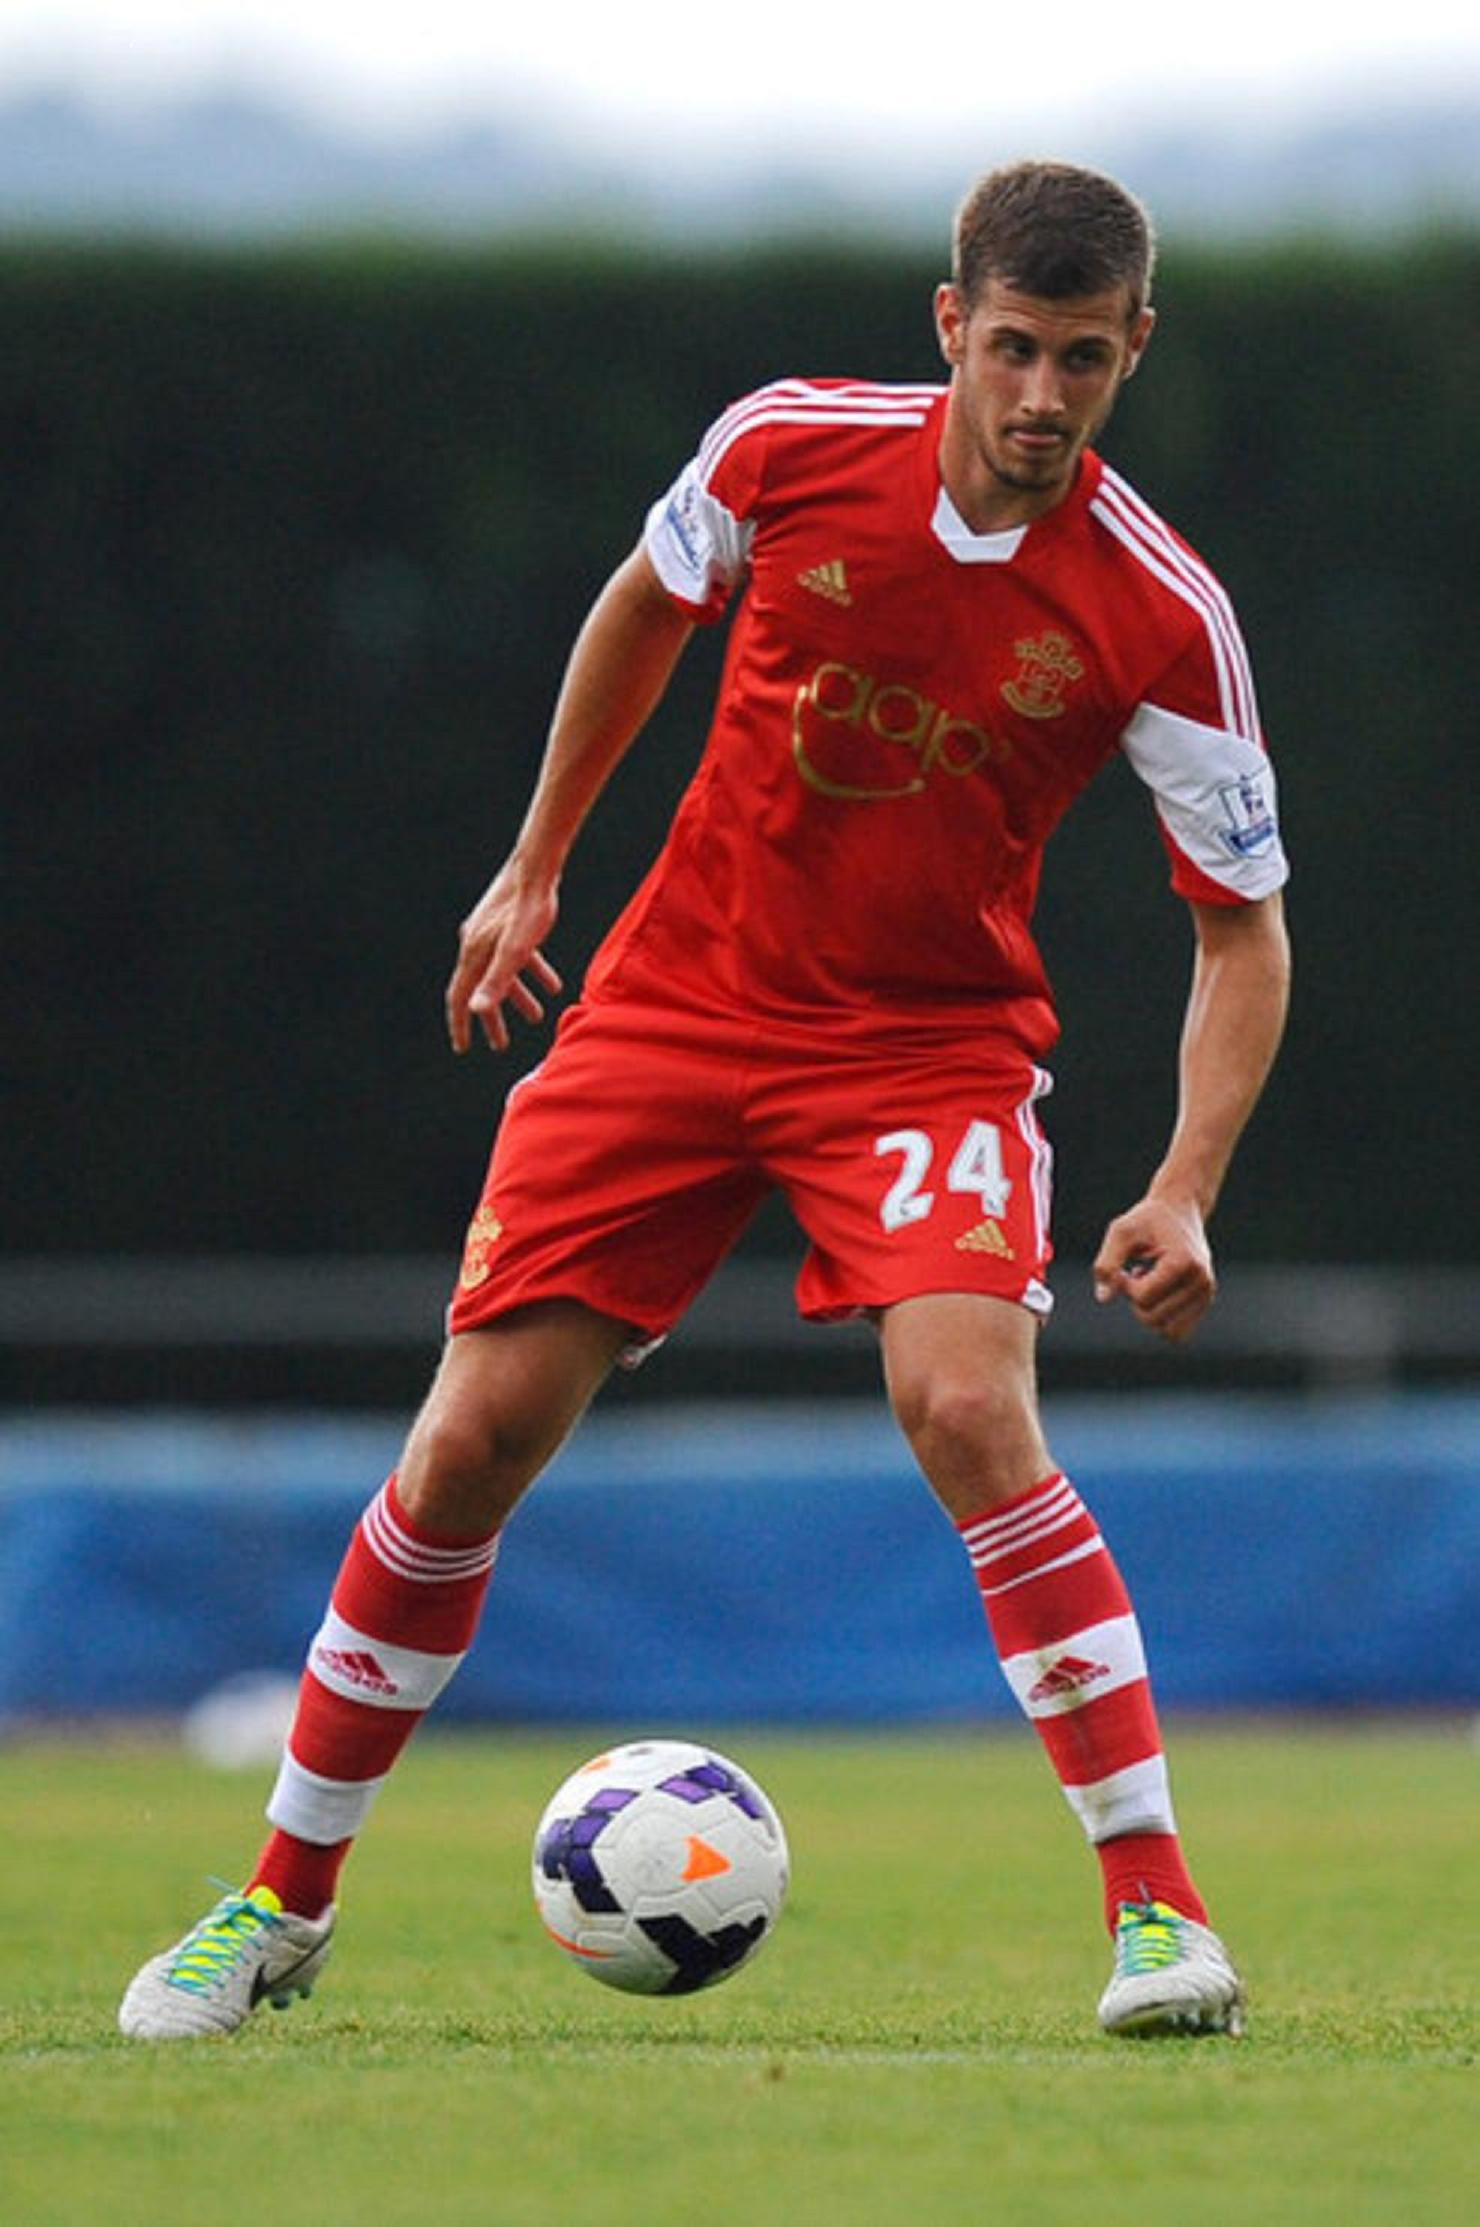 Swindon Town loanee Jack Stephens made his debut in the 0-0 draw at Bristol City this afternoon